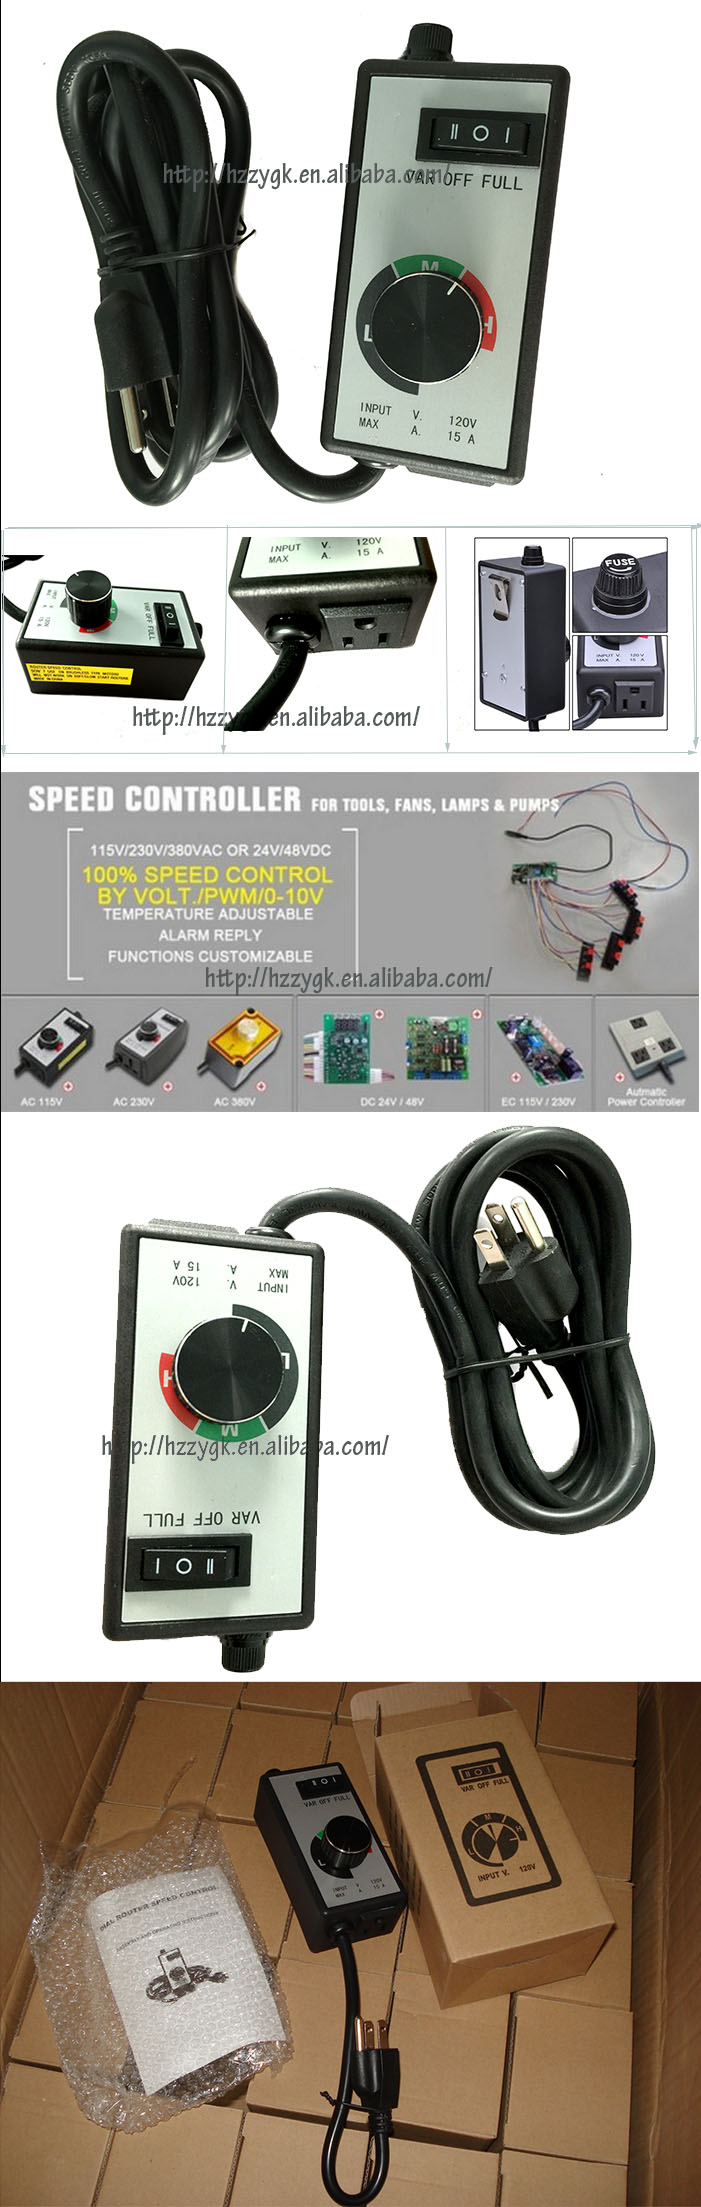 Single phase ac motor speed controller for inline duct fan for Single phase ac motor control